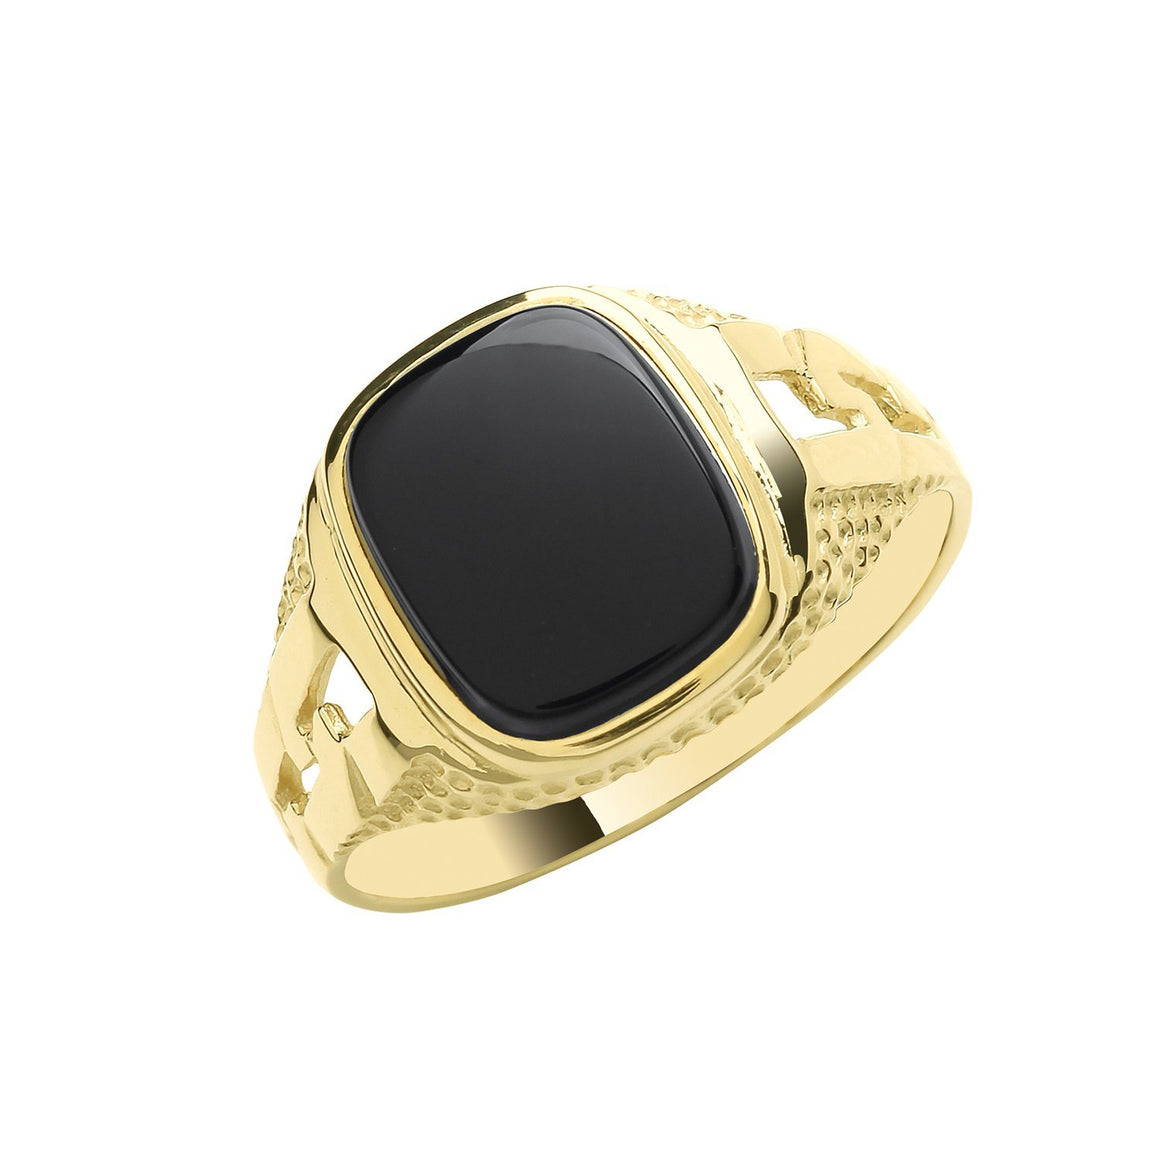 Men's 9ct gold and black onyx signet ring in a cushion design with curb link style sides